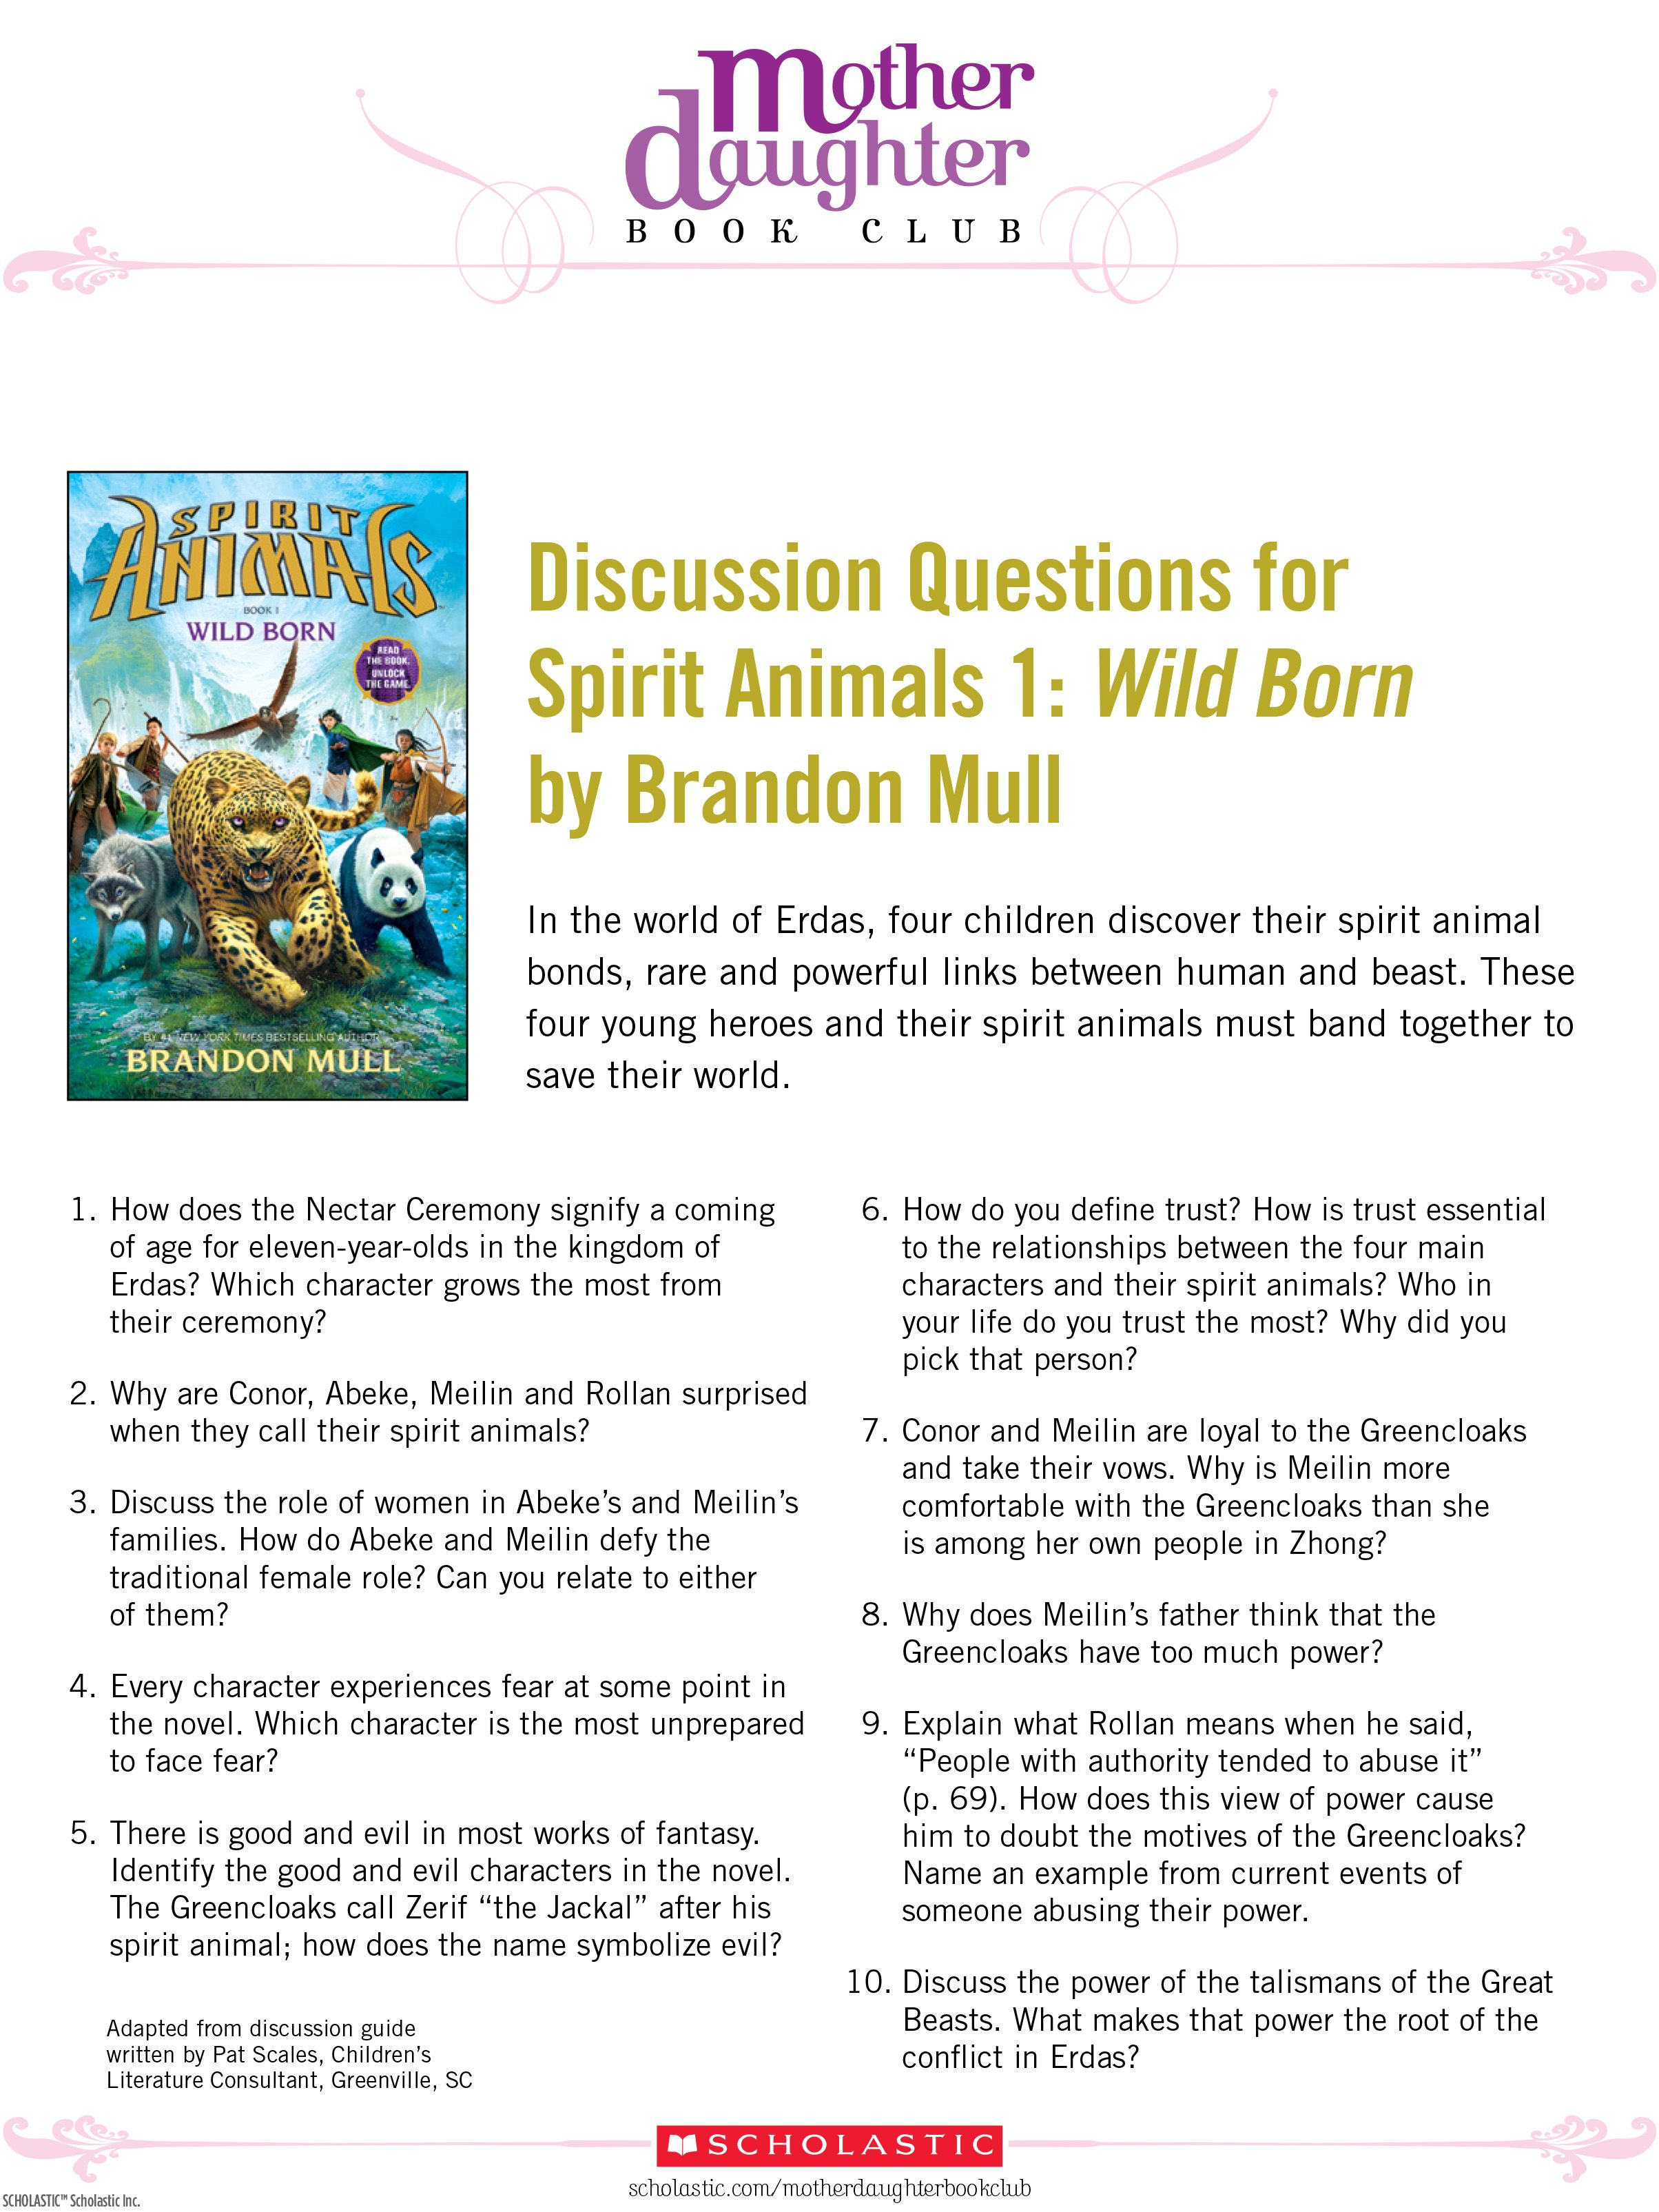 Discussion Questions For Spirit Animals Wild Born By